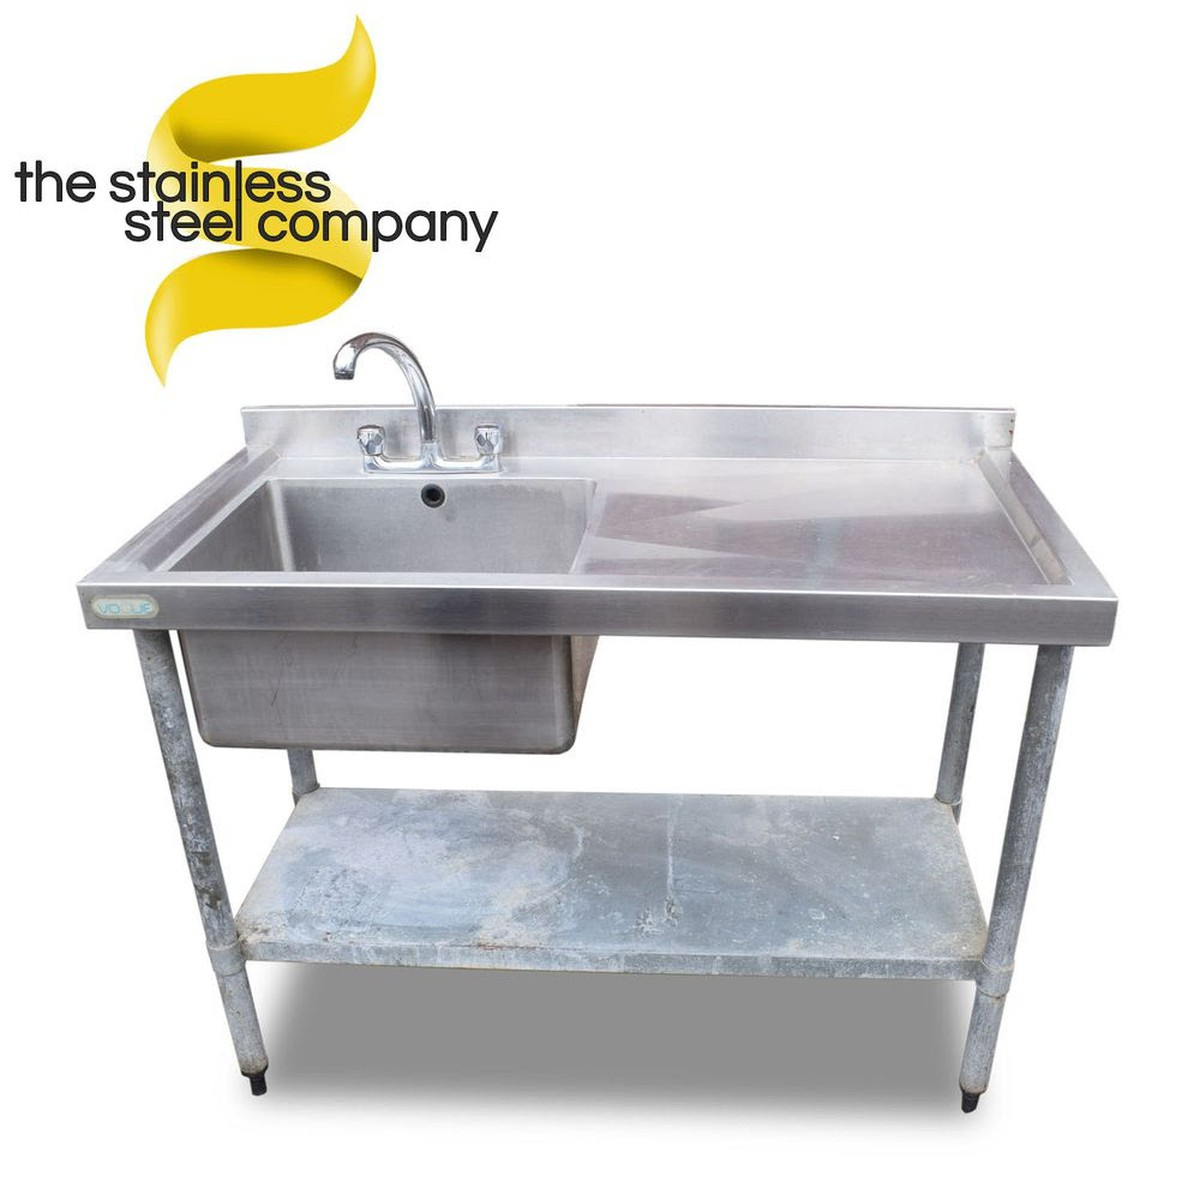 used kitchen sinks for sale home depot countertops secondhand catering equipment single 1 2m